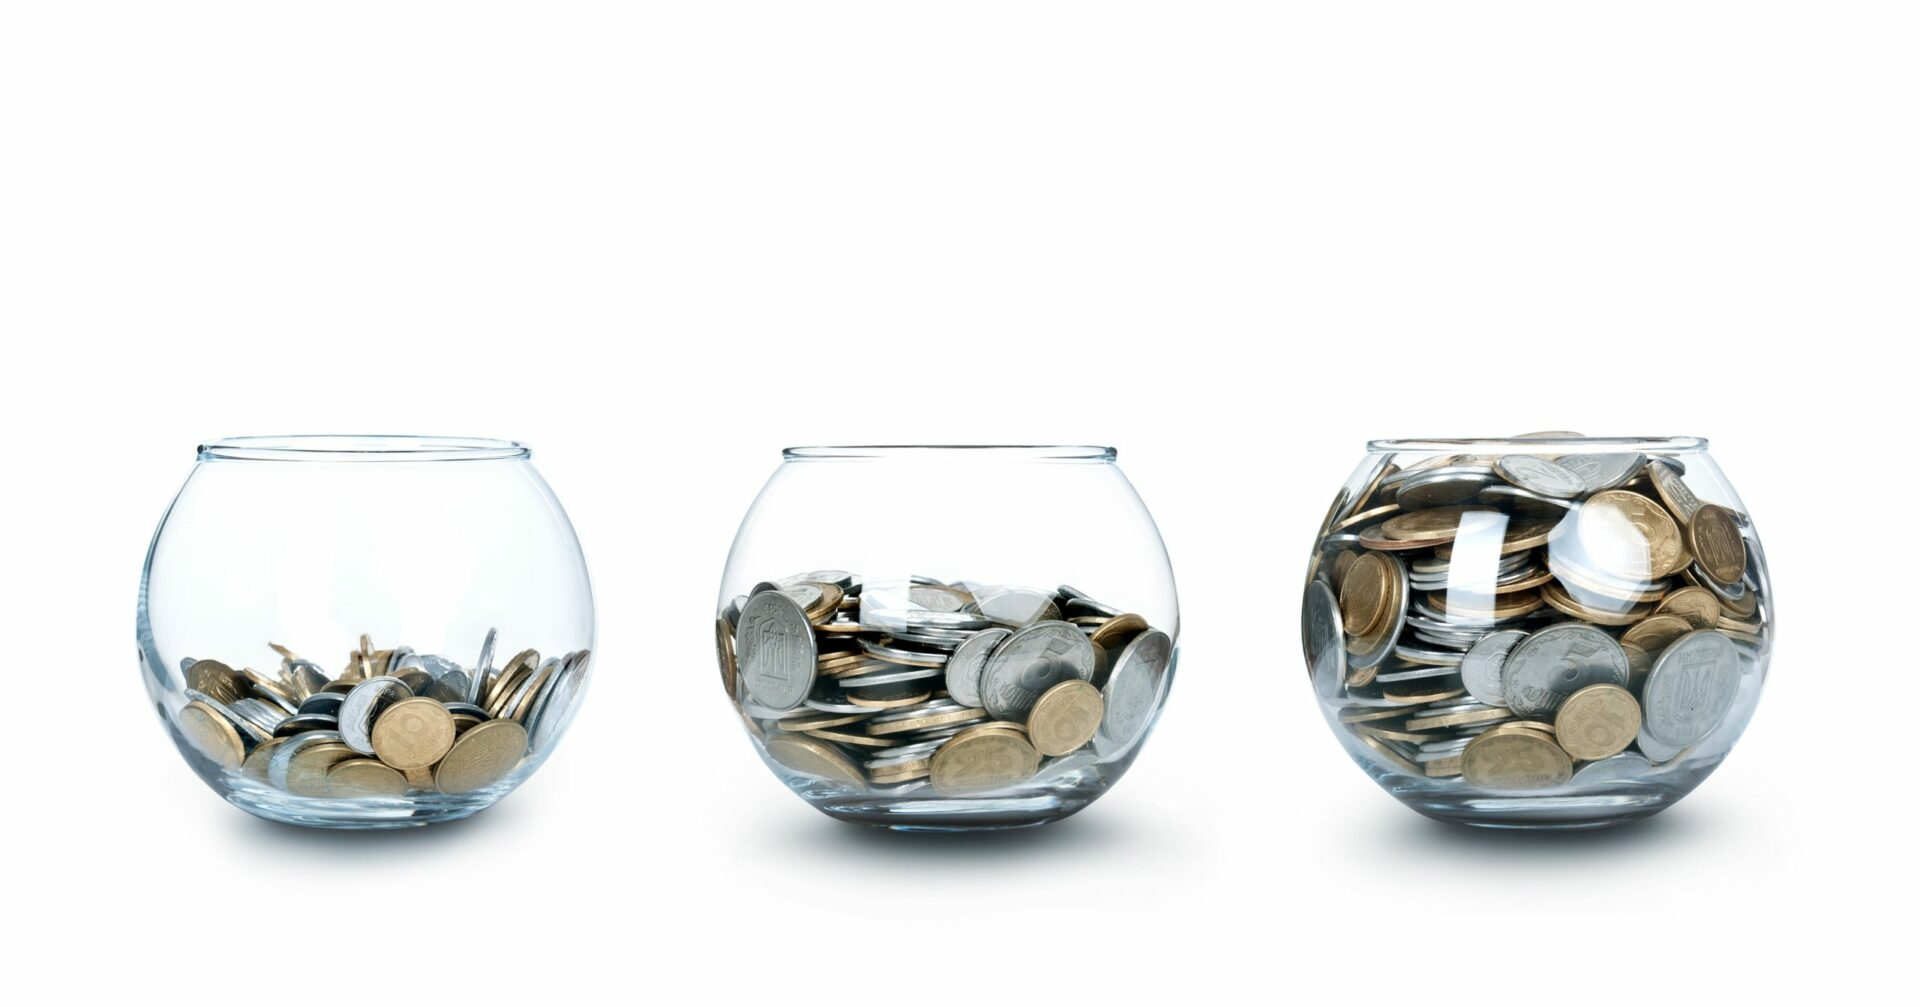 Pensions - End of Tax Year Planning